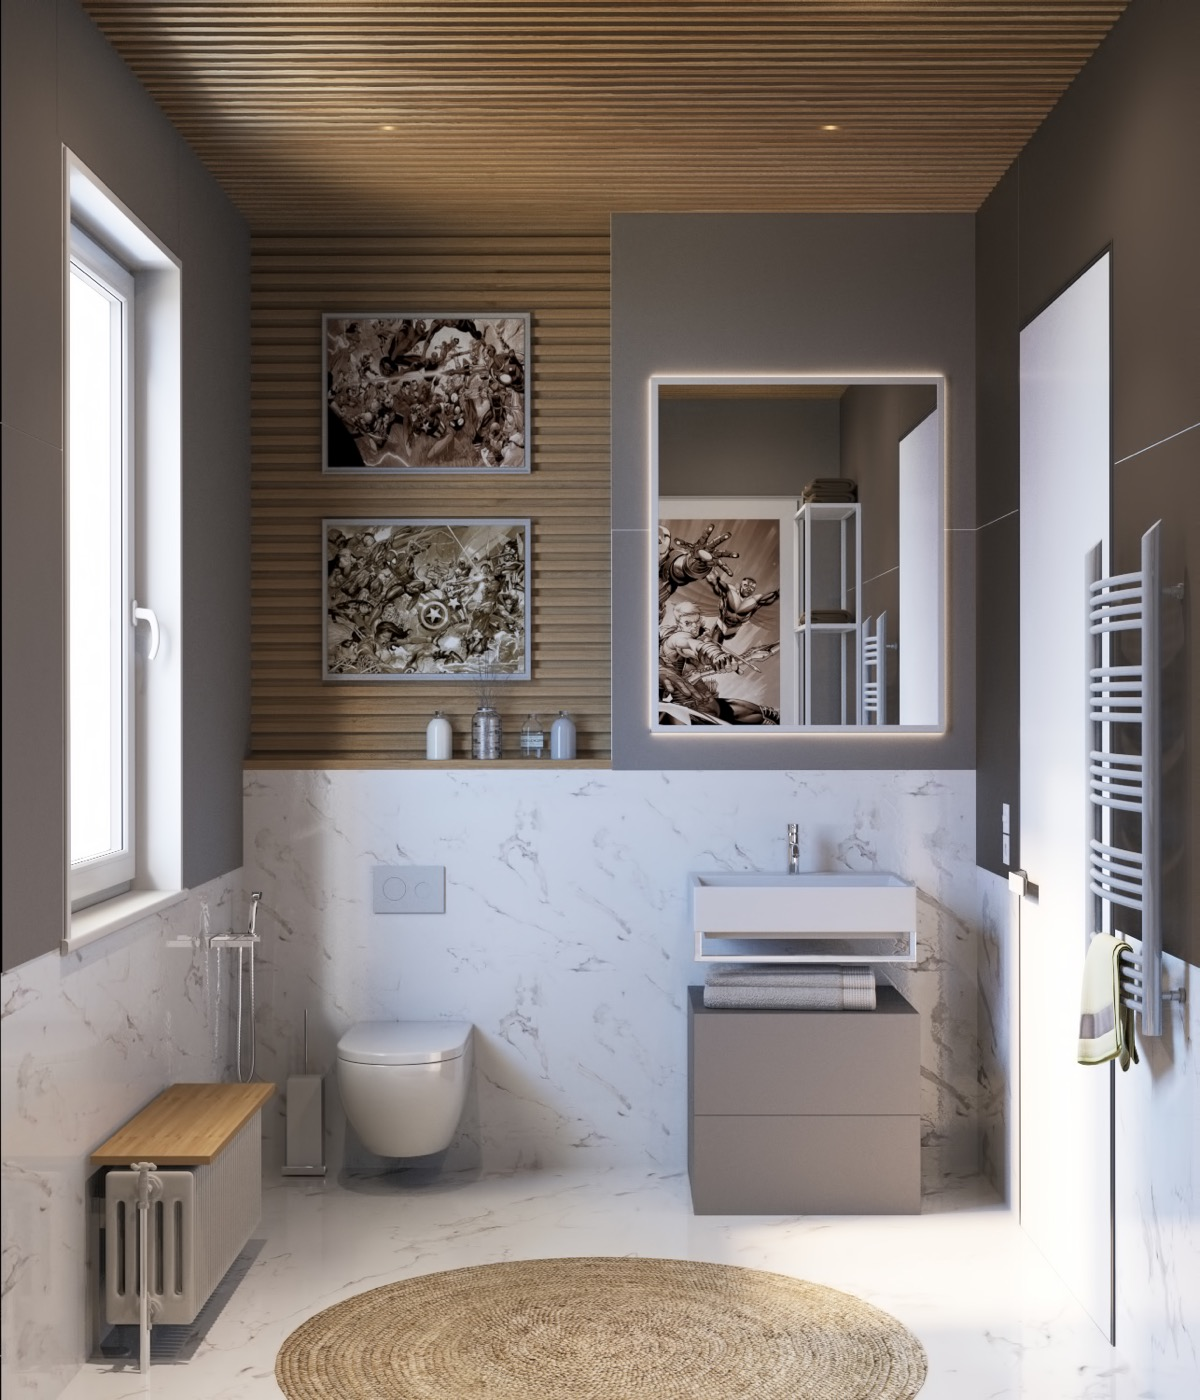 40 Modern Bathroom Vanities That Overflow With Style on Modern Small Bathroom  id=57422